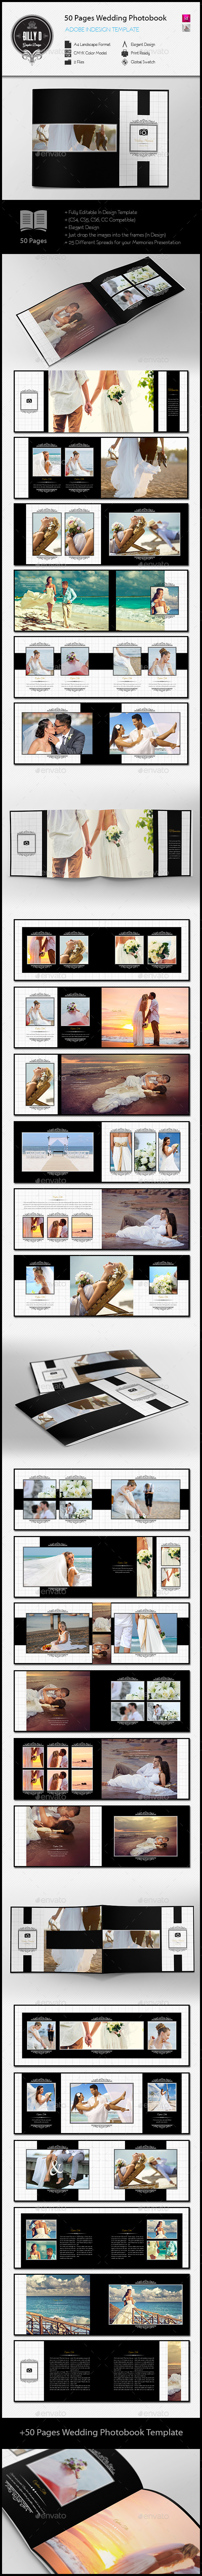 50 Pages Wedding Photobook Template | Template, Photo album printing ...